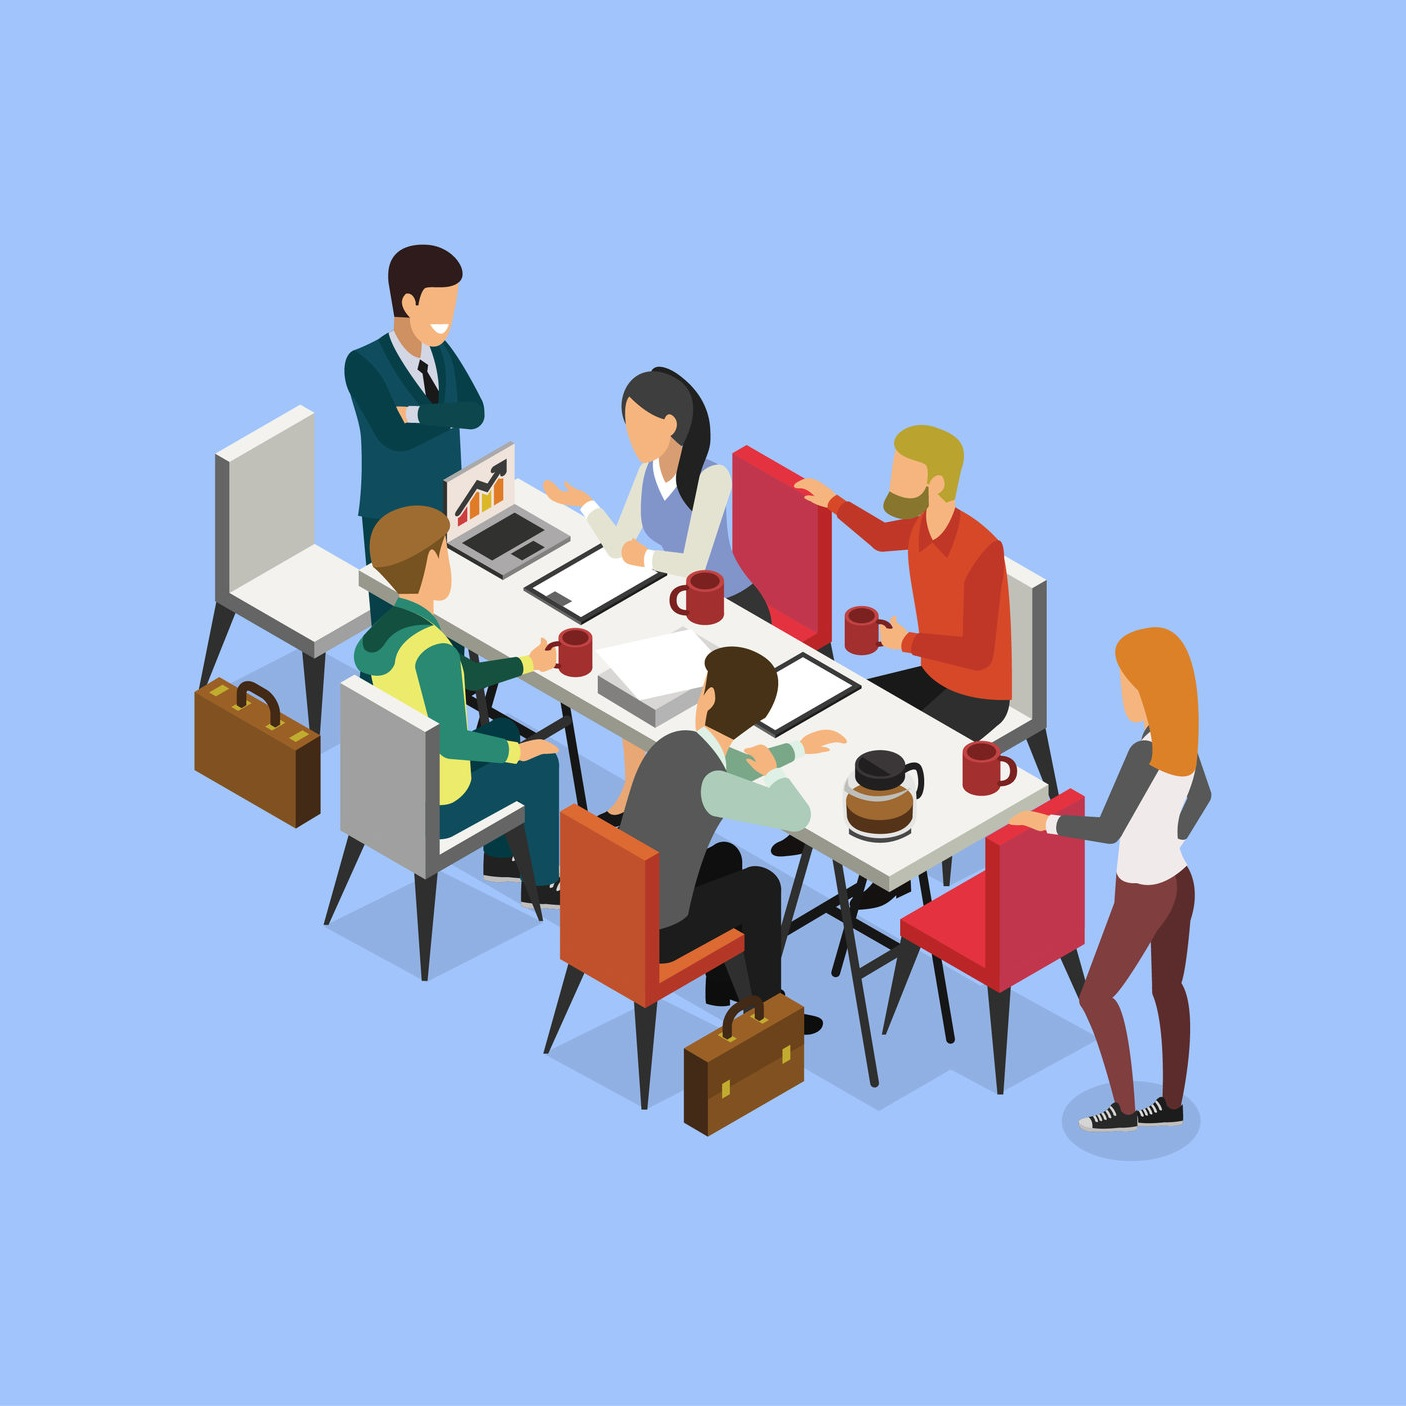 In-person Focus Groups - Have conversations with like-minded people from your city. We will keep the conversation interesting and engaging!